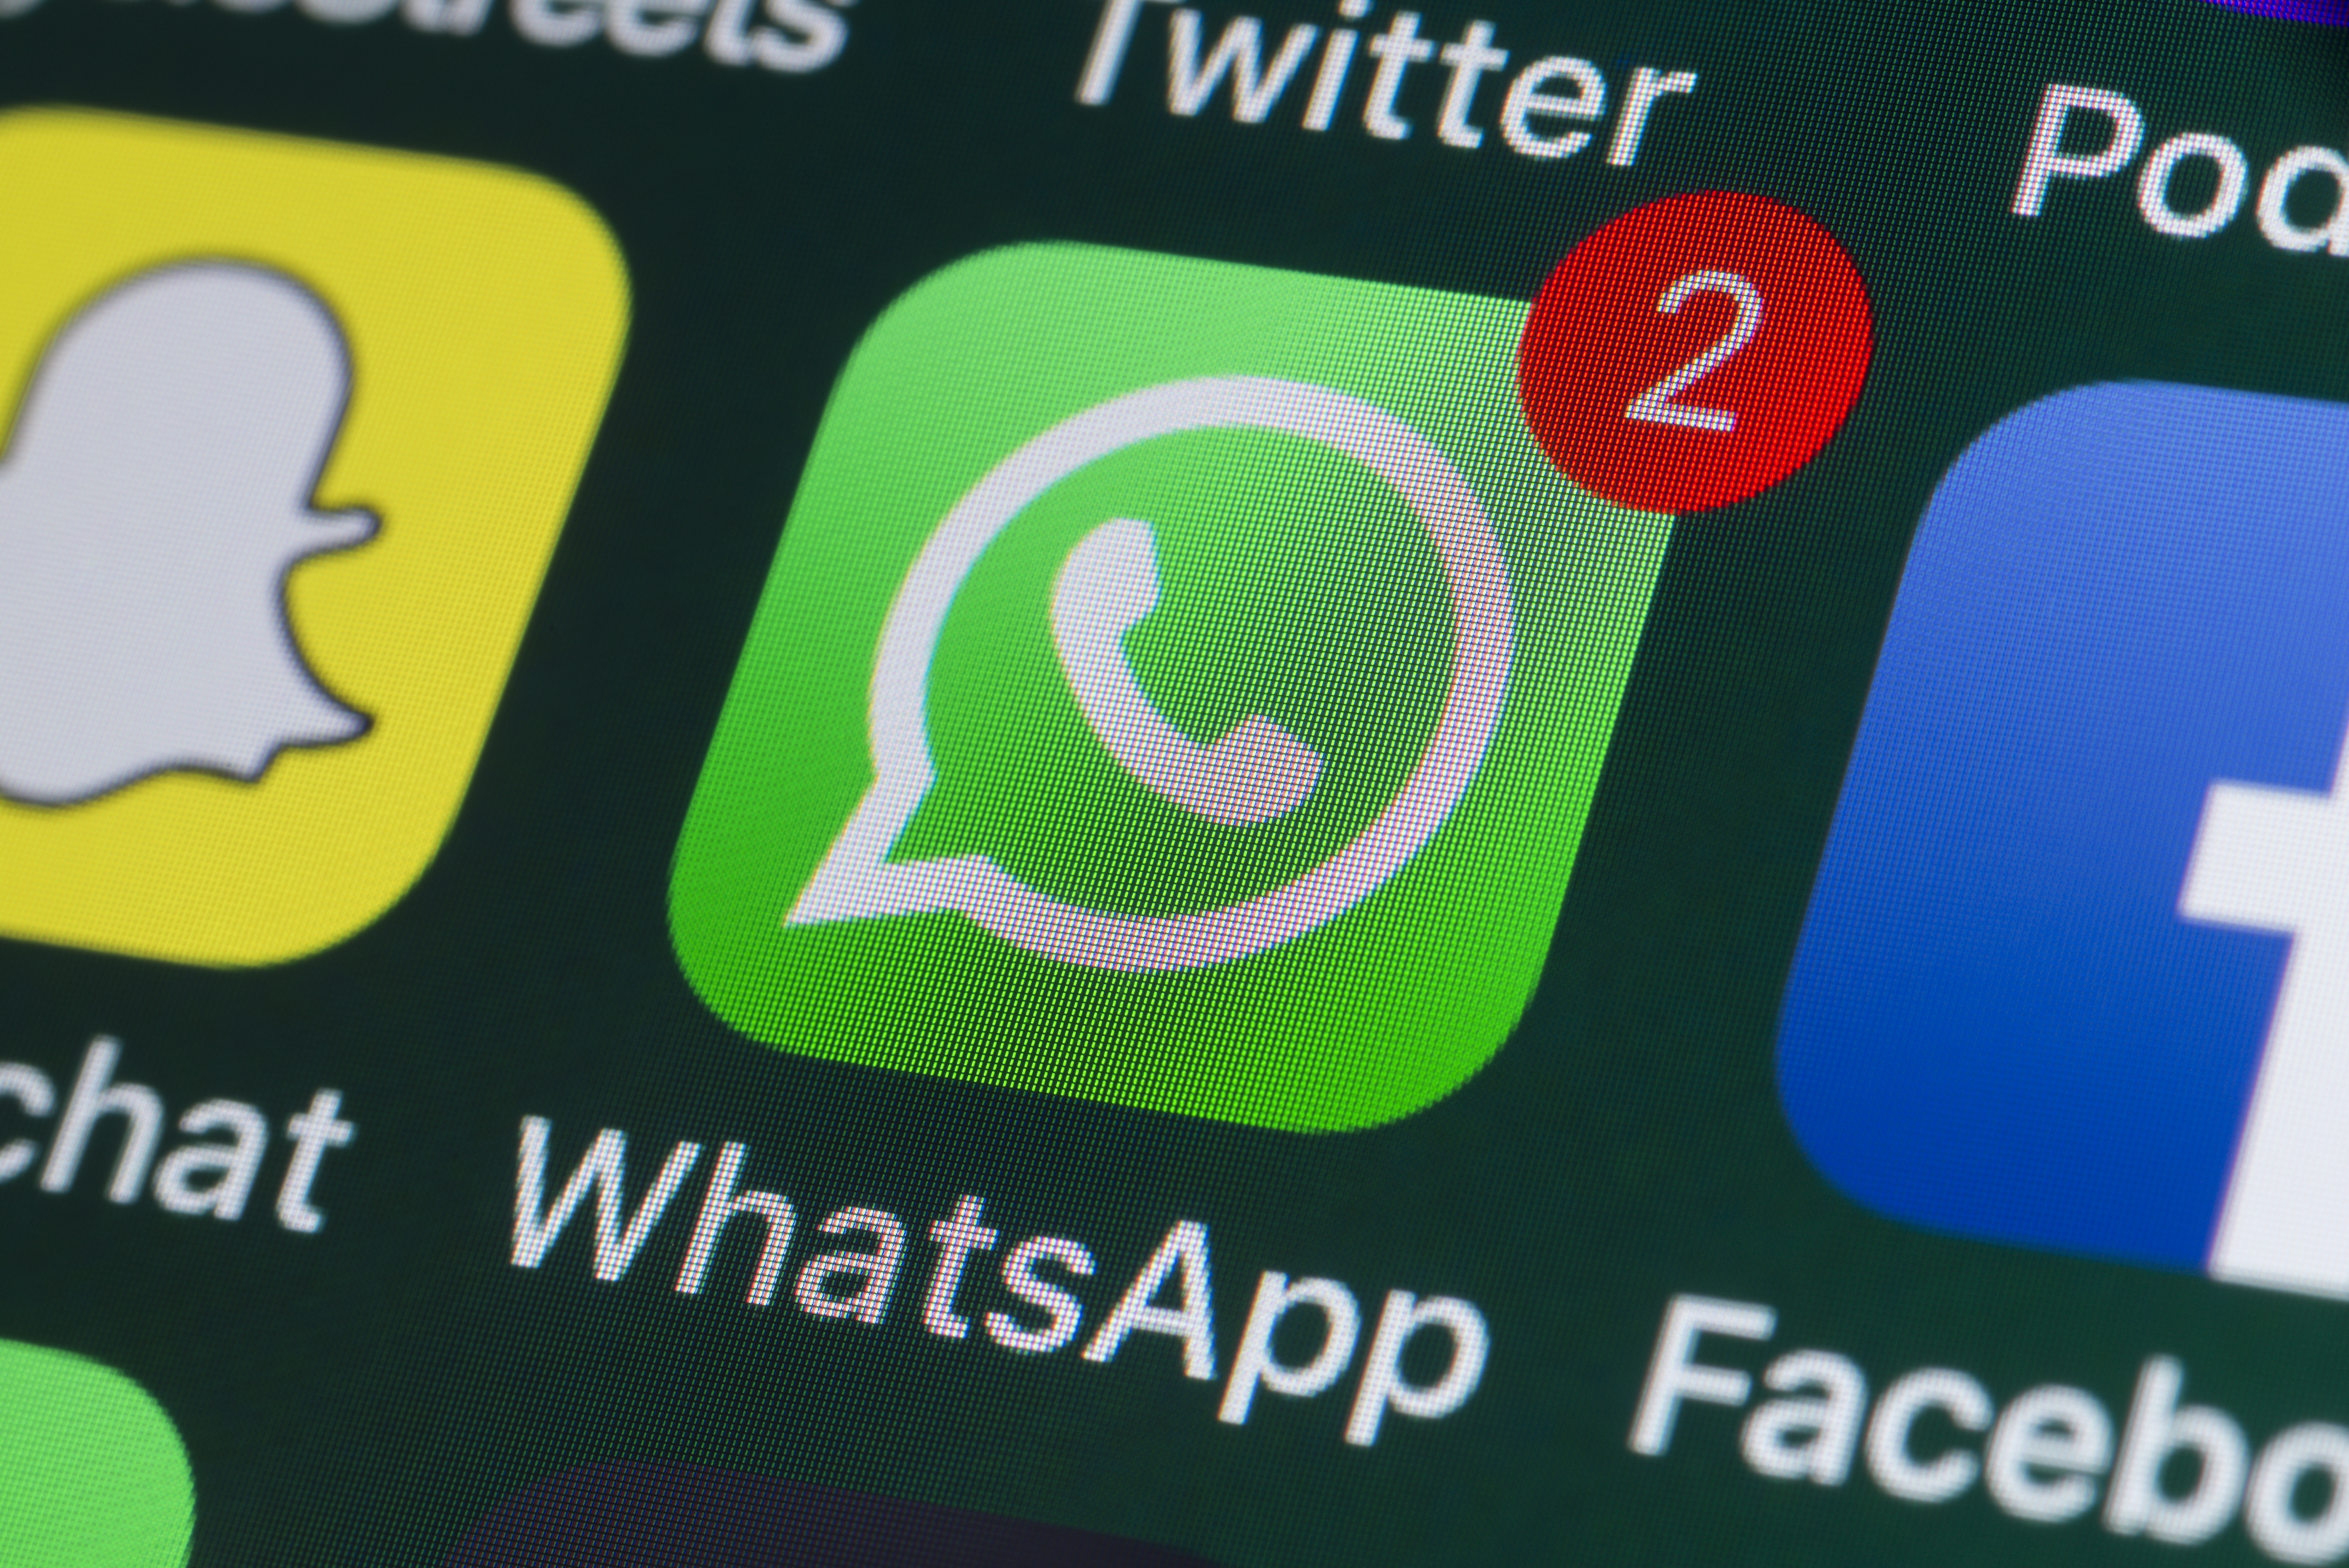 WhatsApp has come out fighting in the wake of criticism over changes to its privacy policies